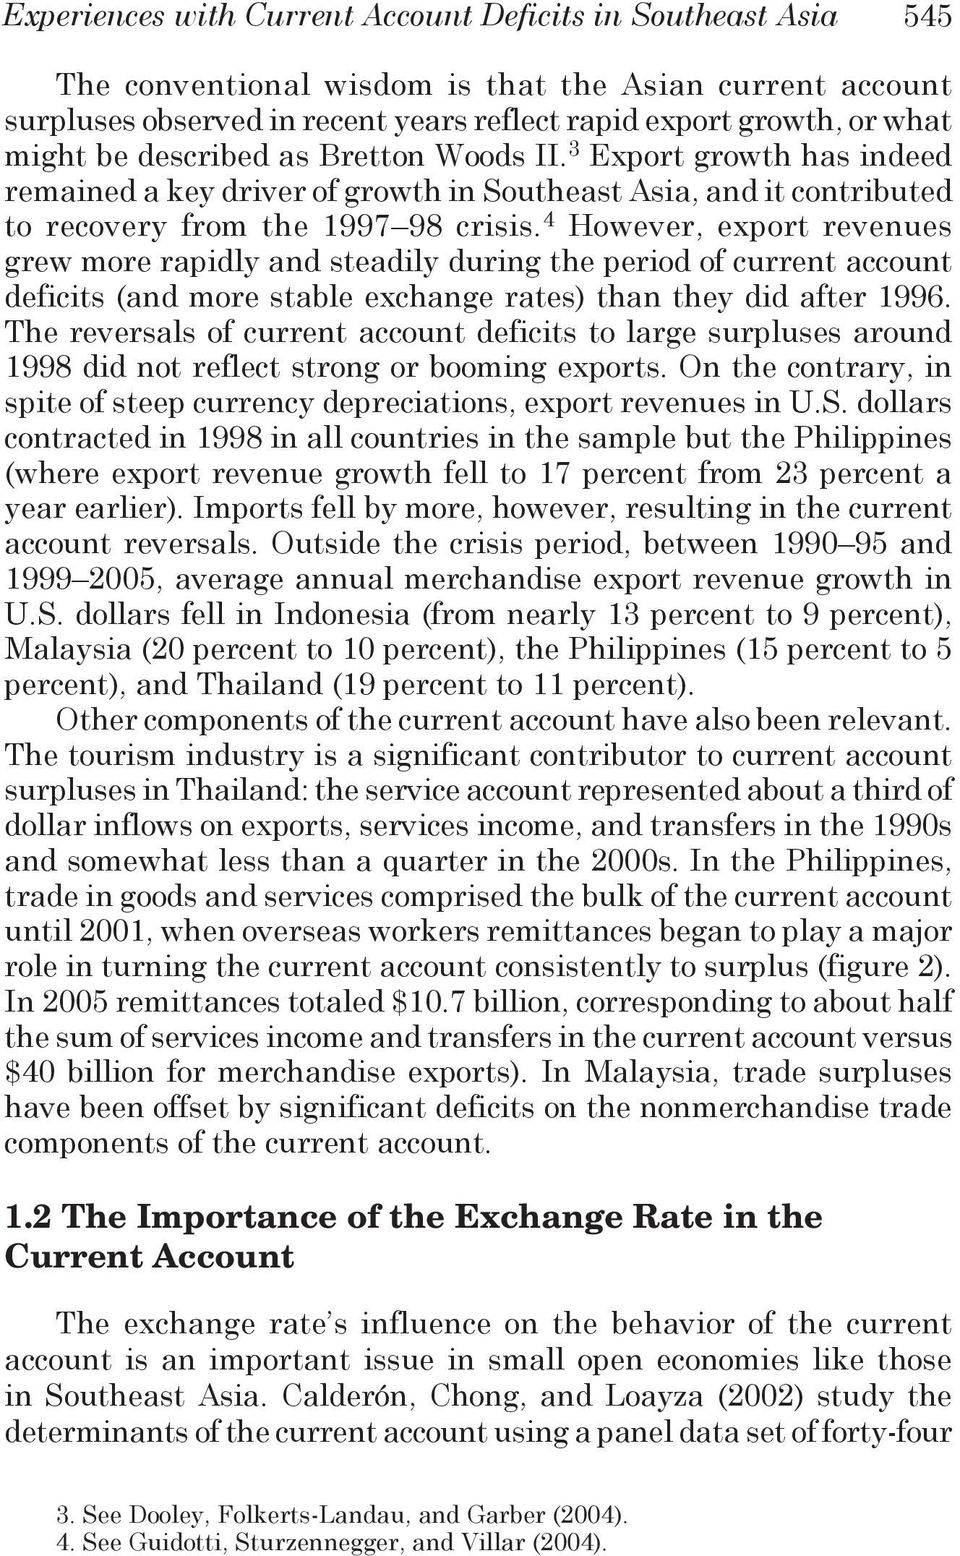 4 However, export revenues grew more rapidly and steadily during the period of current account deficits (and more stable exchange rates) than they did after 1996.